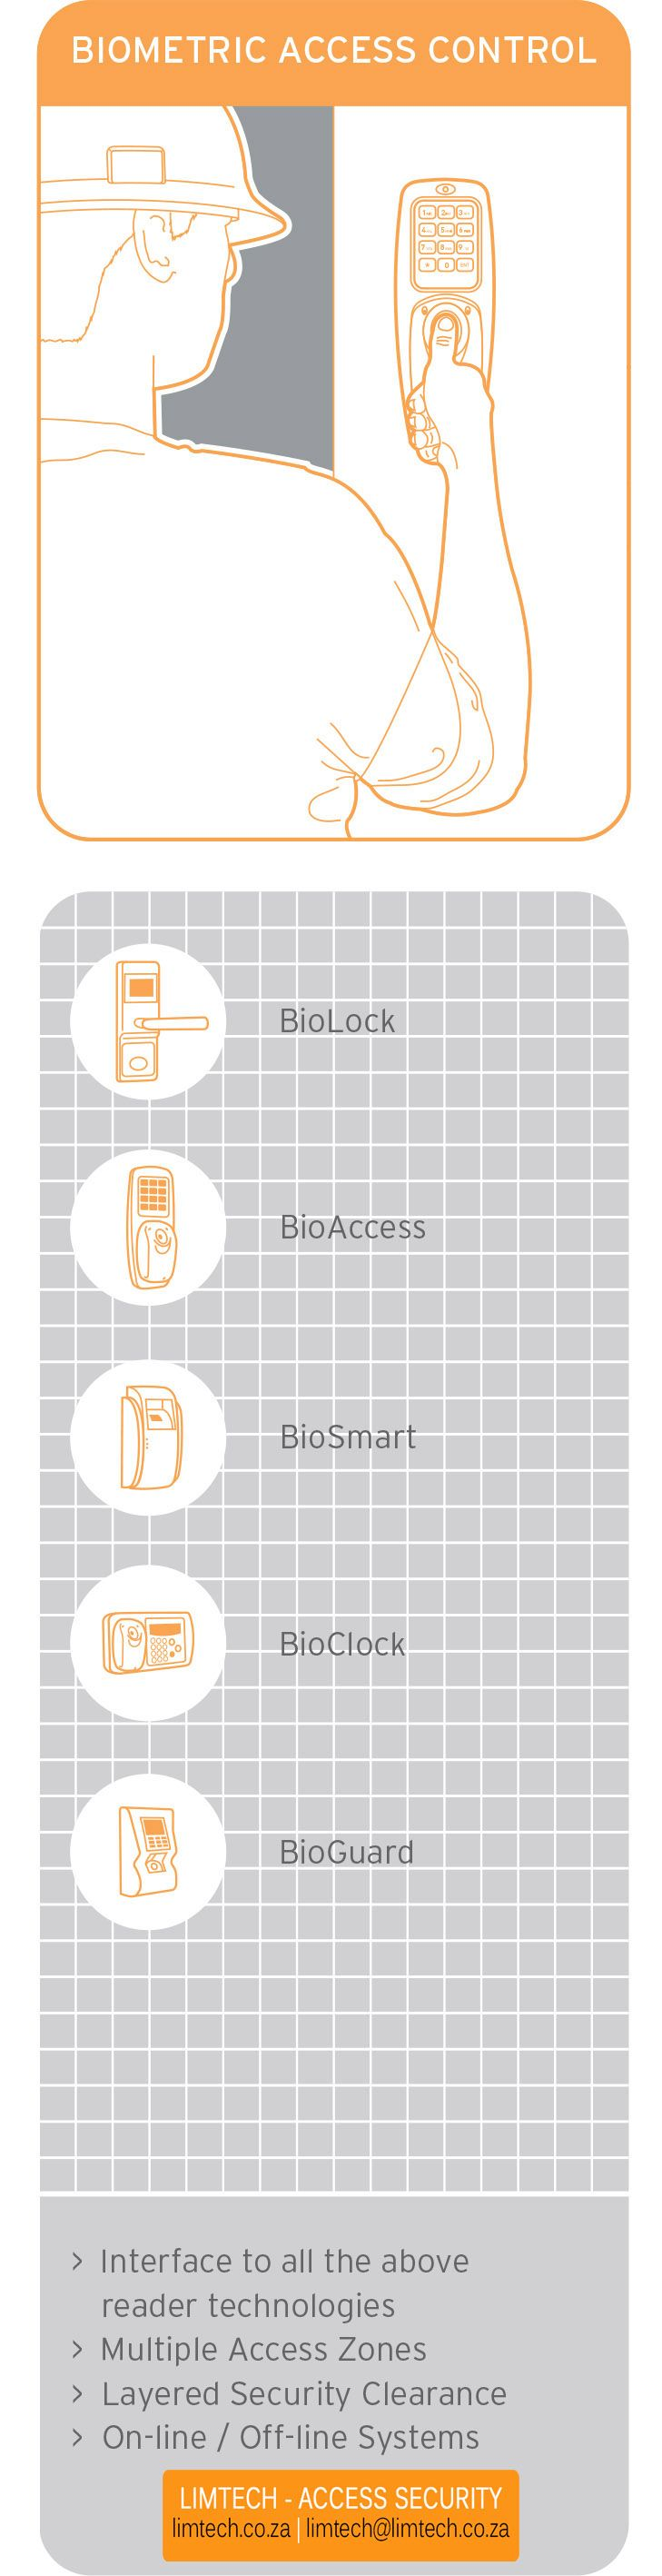 Biometric access control offers you a secure solution for restricted areas